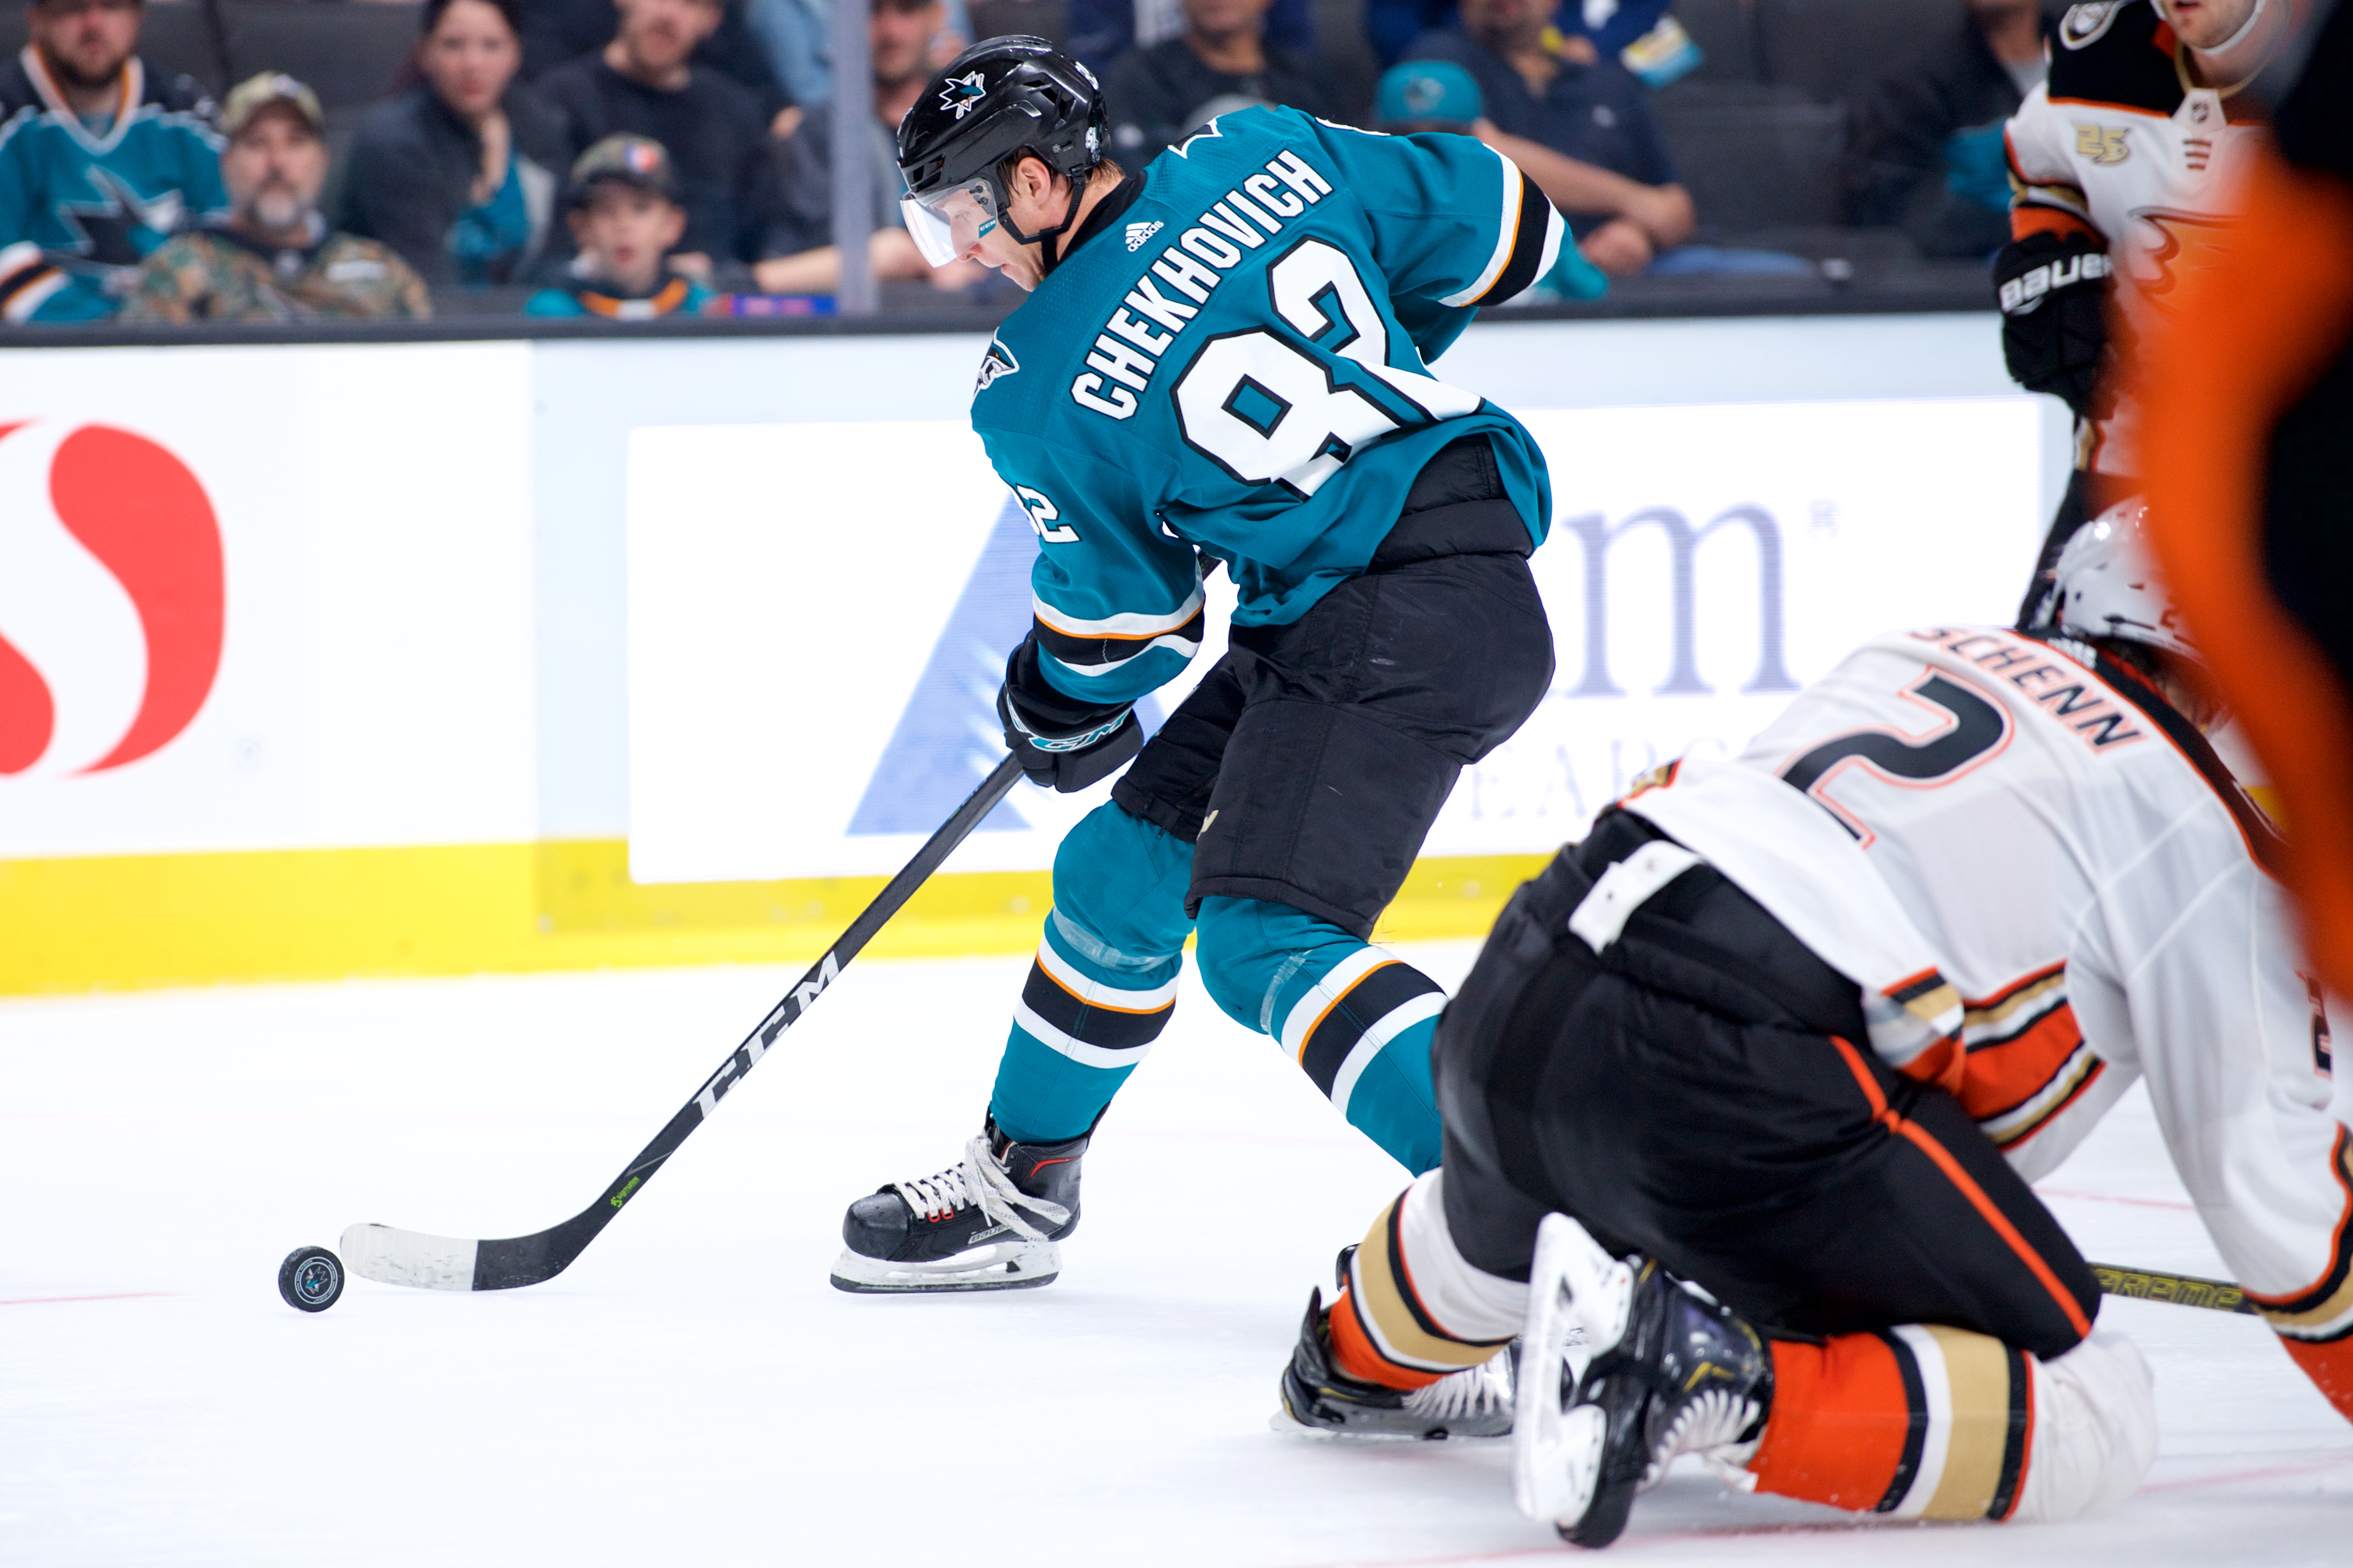 San Jose Sharks left wing Ivan Chekhovich (82) skates by a defender during the San Jose Sharks game versus the Anaheim Ducks on September 18, 2018, at SAP Center at San Jose in San Jose, CA.